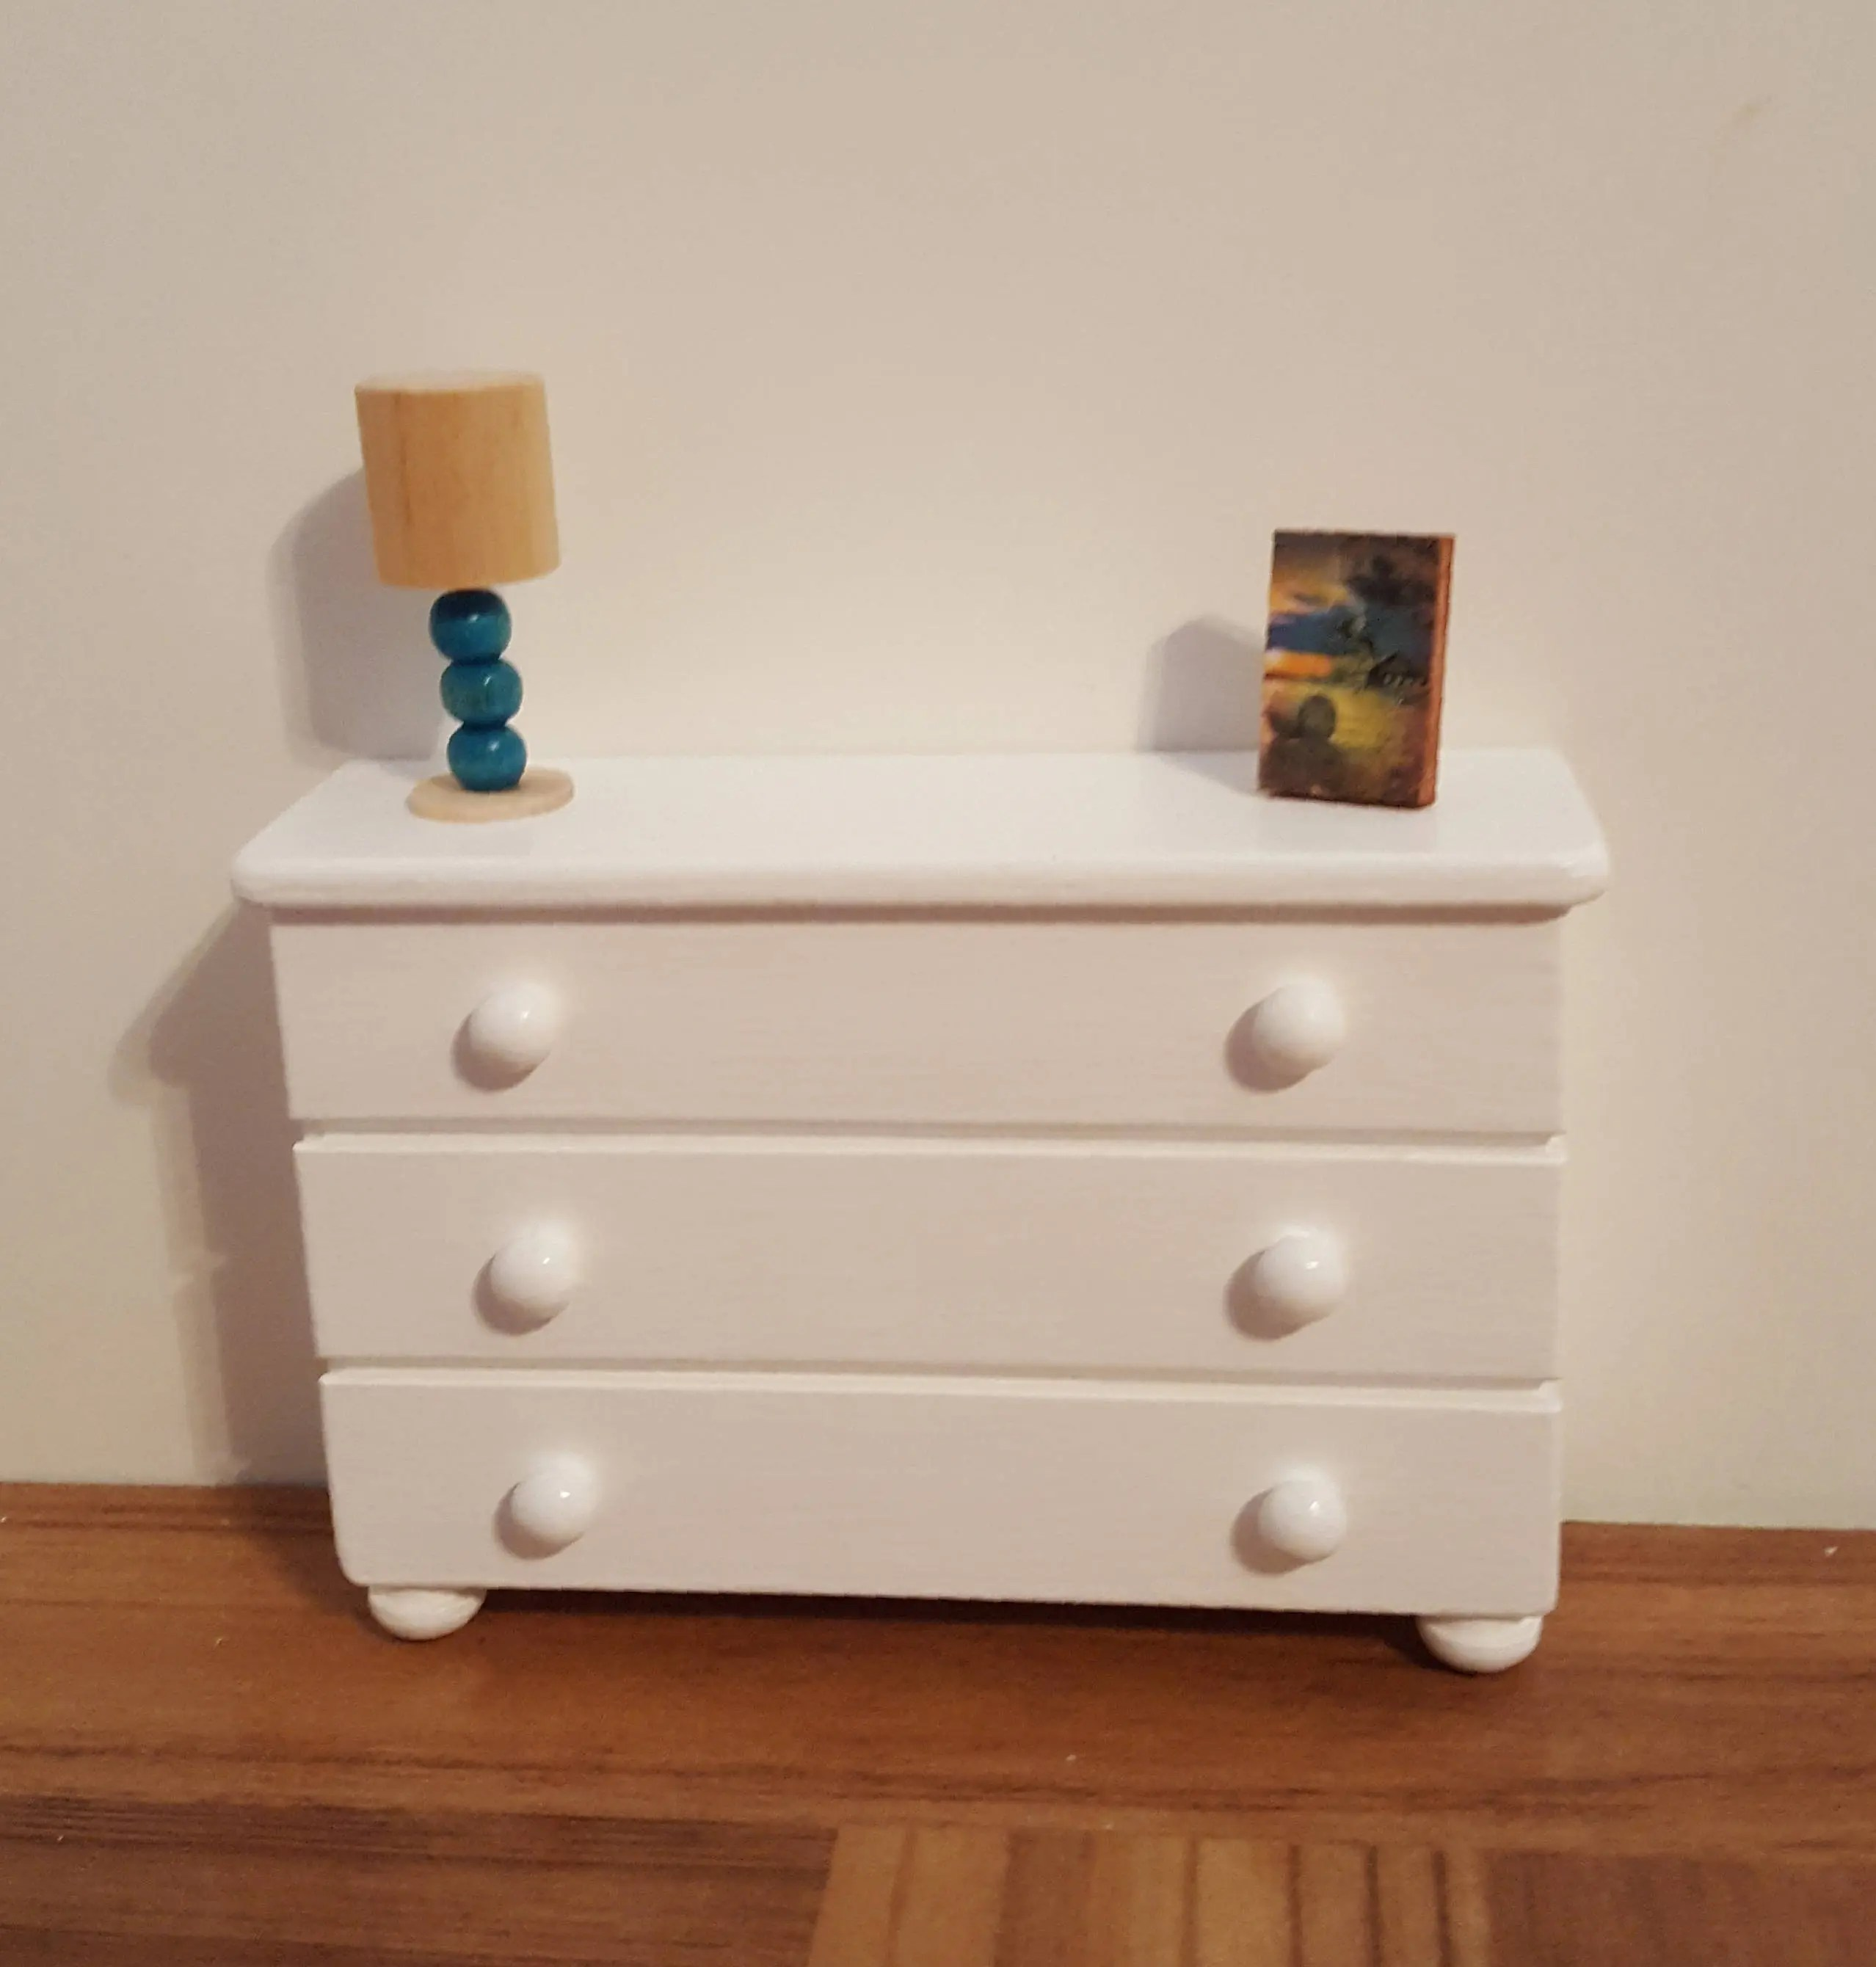 Table Bureau Bureau Or Side Table For Playscale Dolls 1 6 Scale Furniture 1 6 Scale Bureau 1 6 Scale Table Barbie Size Wooden Doll Furniture